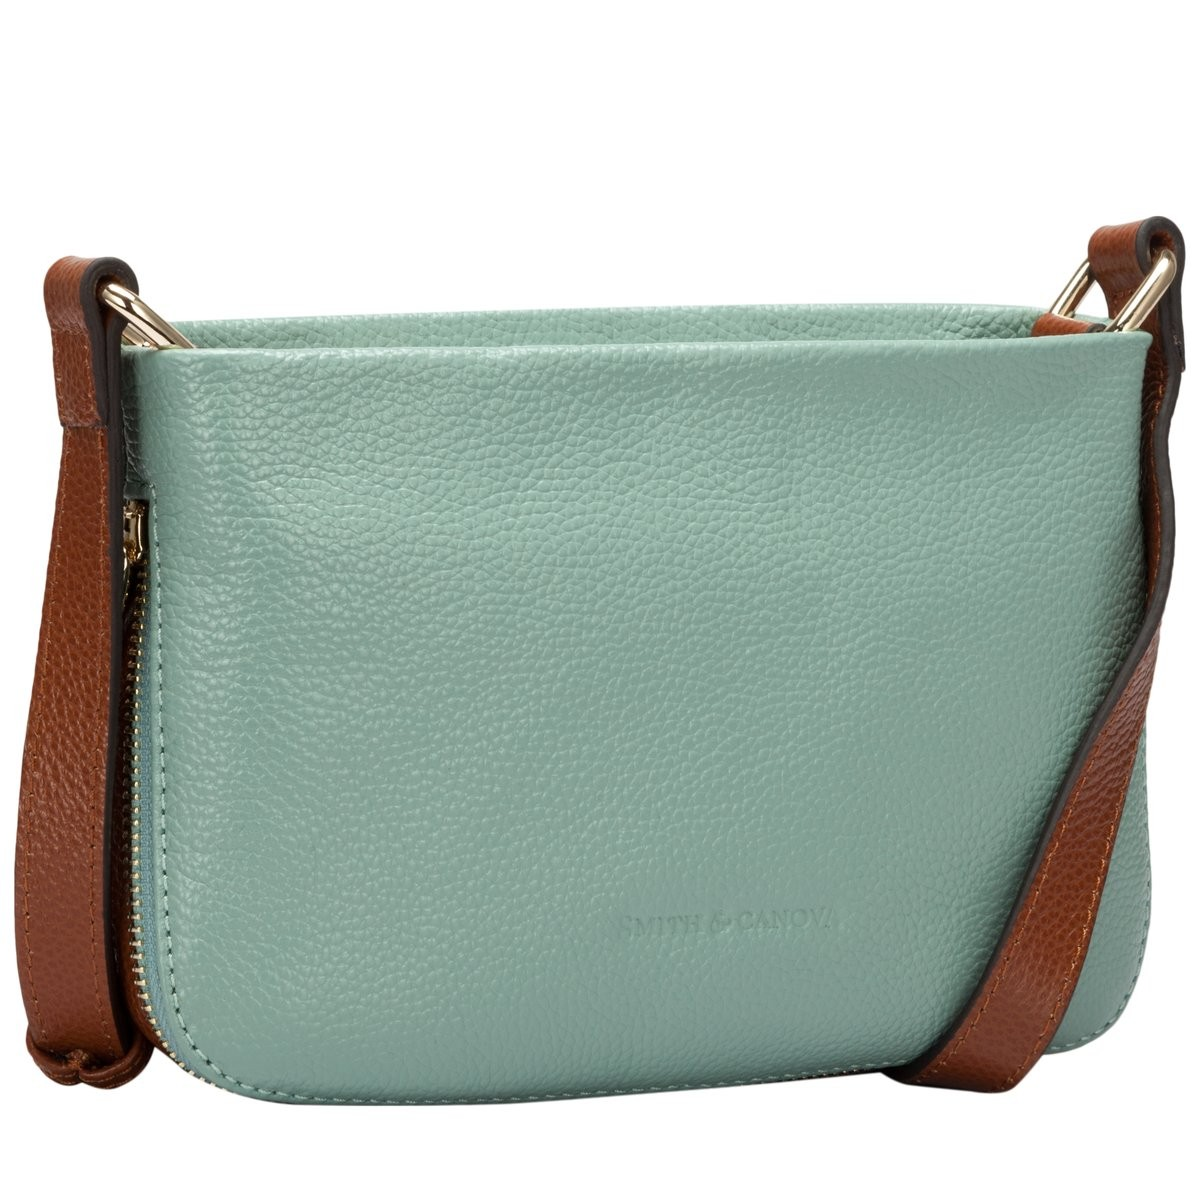 soft leather cross body bag uk